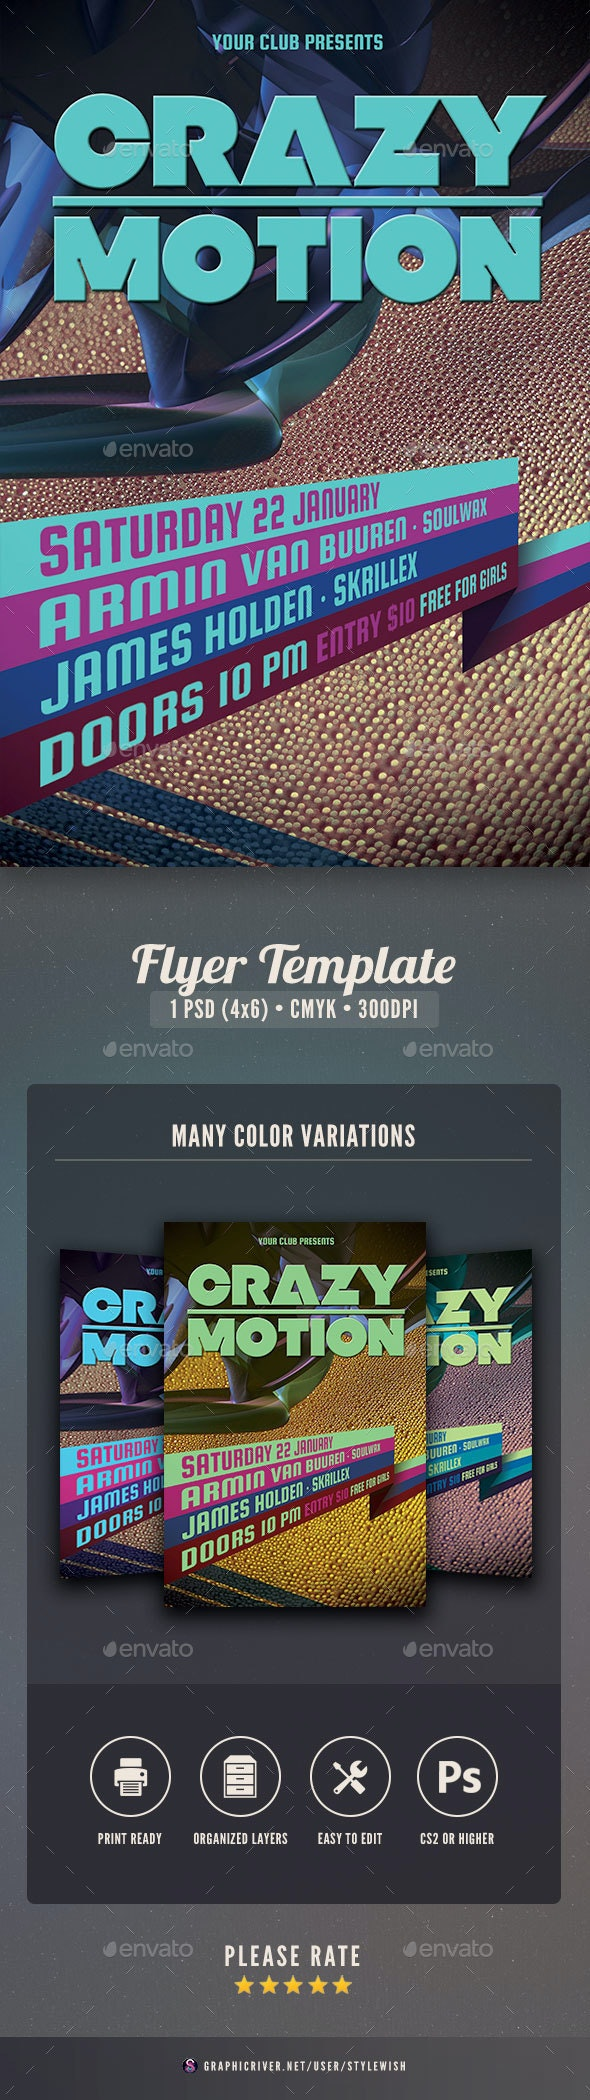 Crazy Motion Flyer - Clubs & Parties Events